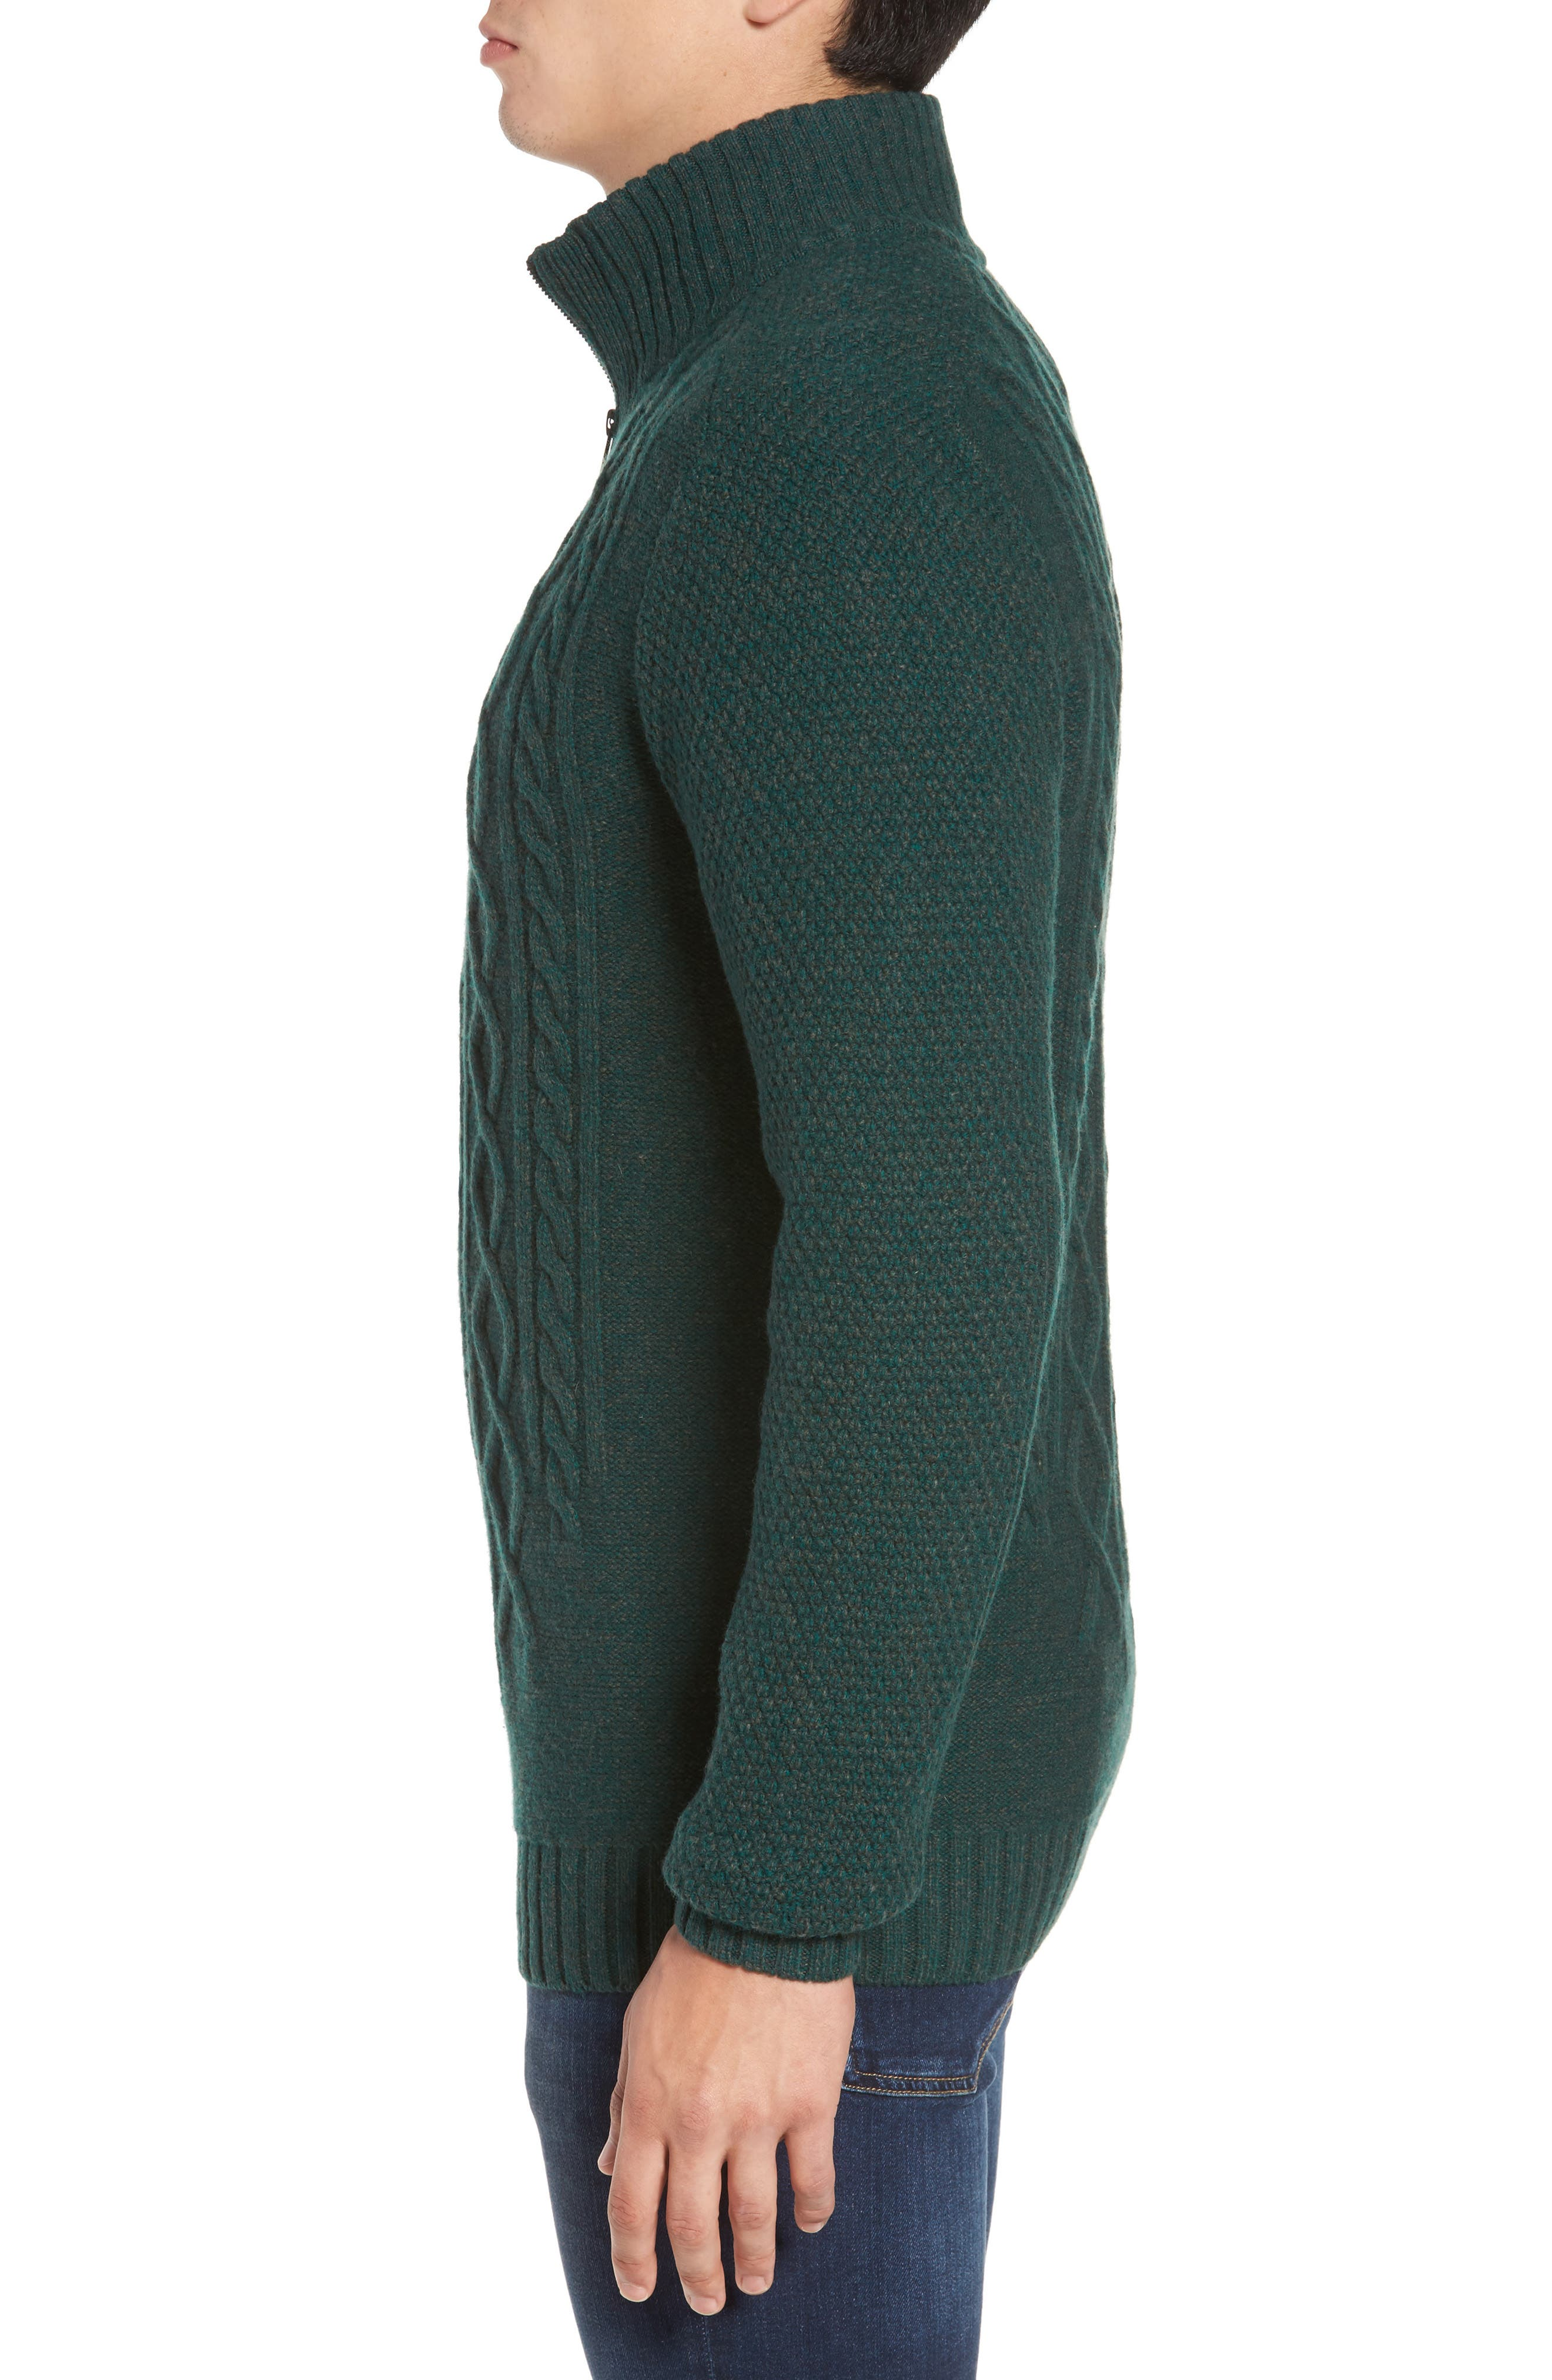 Cape Scoresby Wool Sweater,                             Alternate thumbnail 8, color,